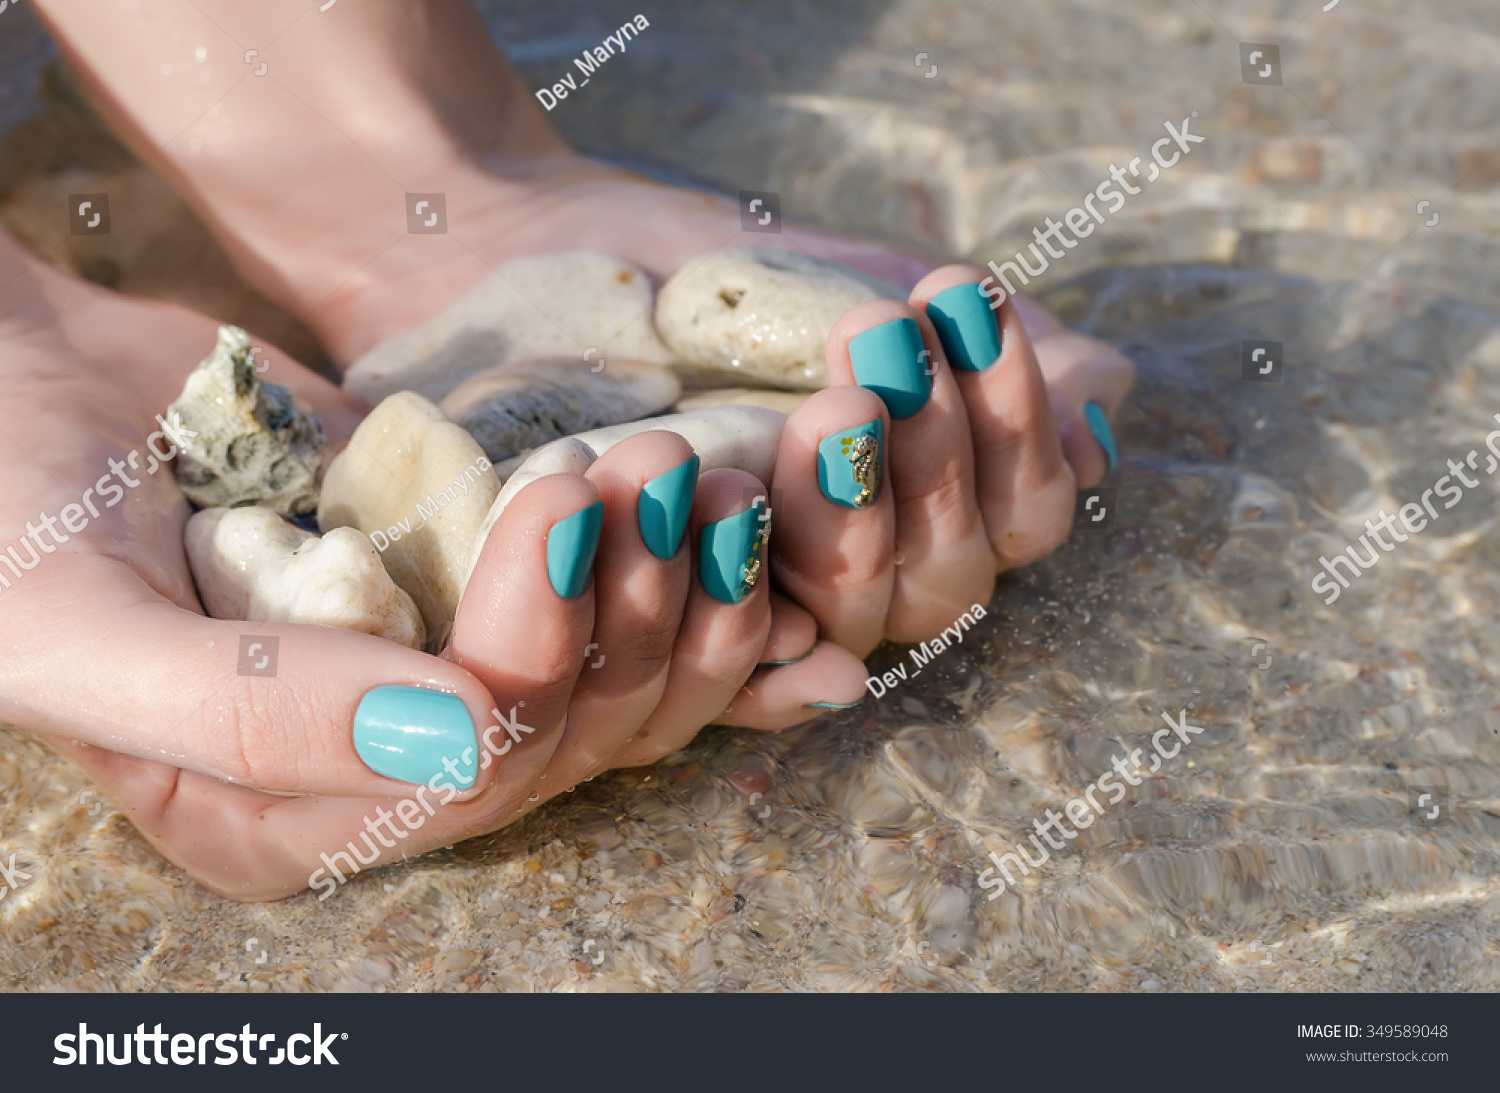 Female Hand Turquoise Nail Design Sea Stock Photo (Royalty Free ...